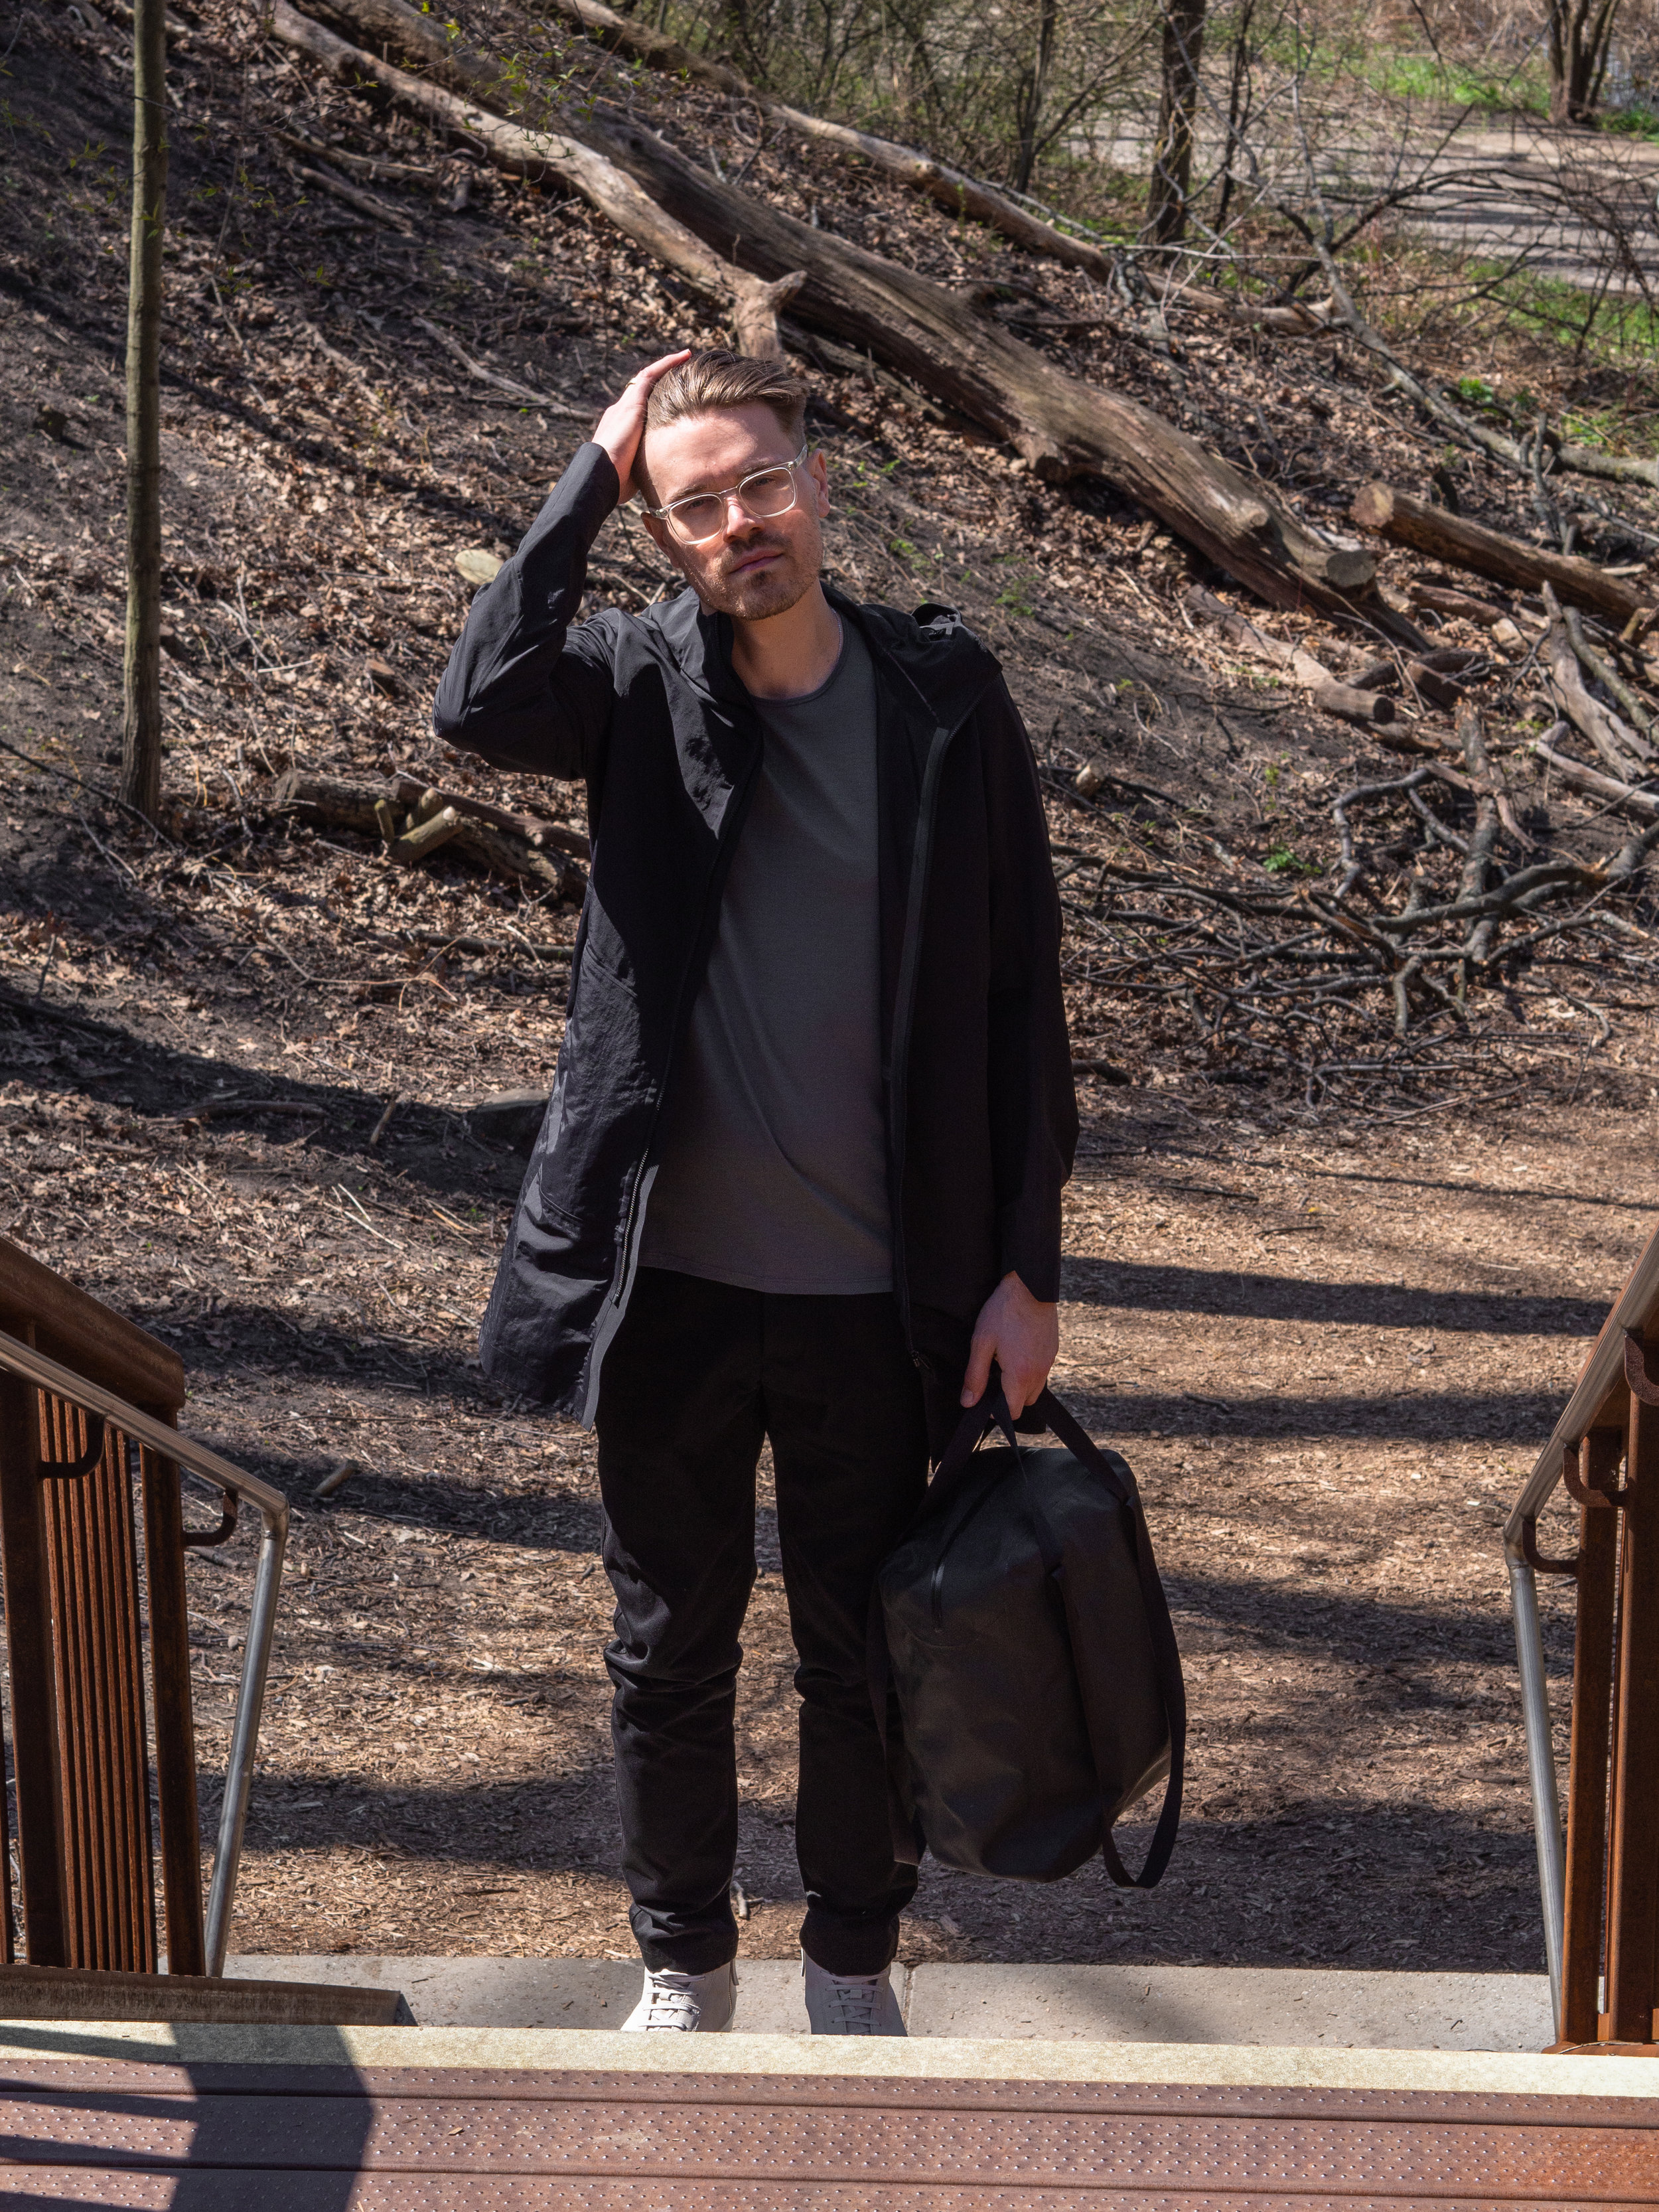 011    Arc'teryx Veilance Monitor SL, Merino Tee and  Tote     Wings + Horns    Trousers     WANT Les Essentiels  Sneakers